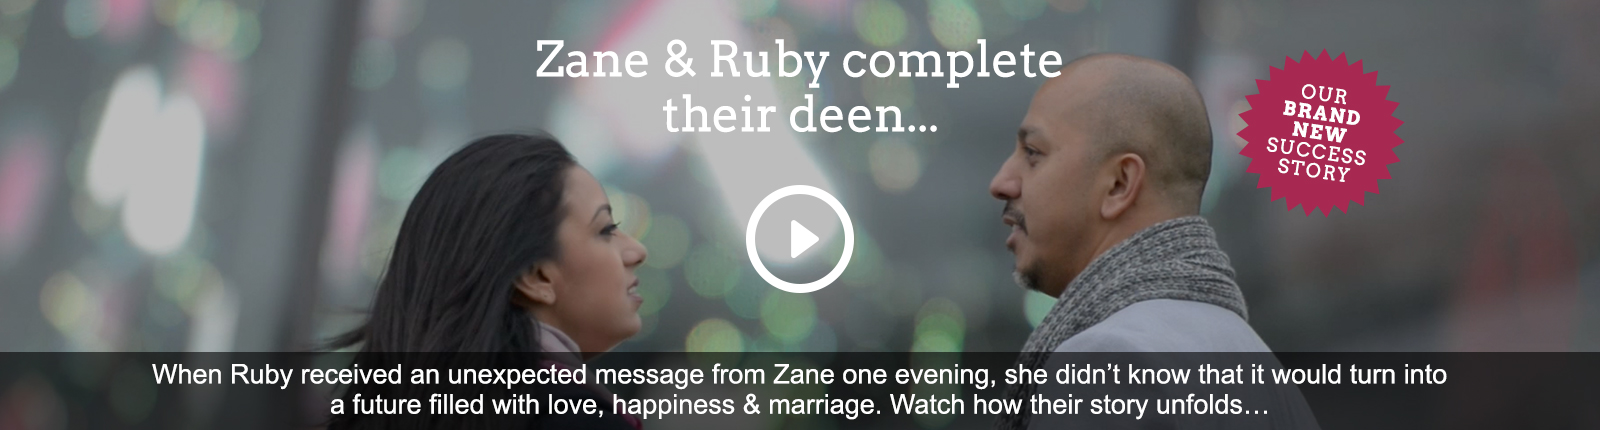 British muslim marriage site